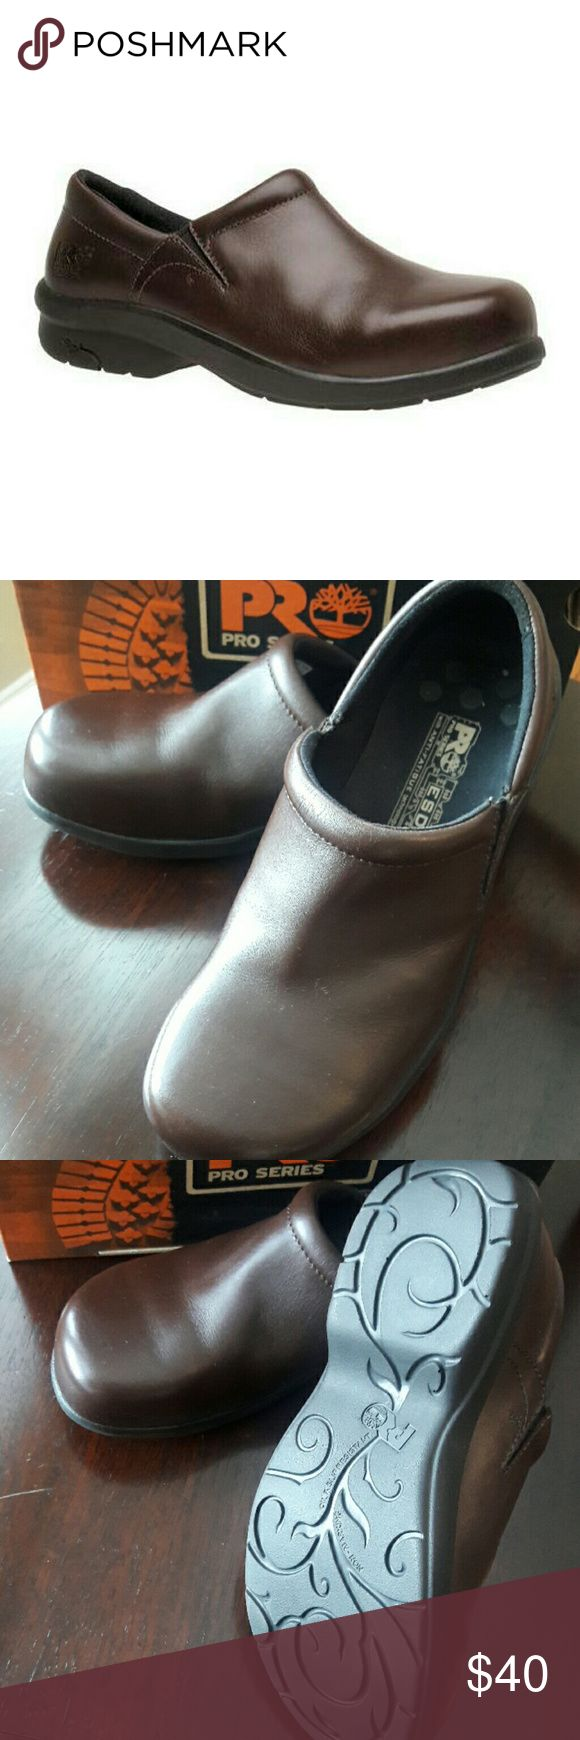 Timberland Safety toe shoes Timberland Pro Series Newbury ESD slip-on alloy safety toe shoes in Brown.  It is size 9.5 but fits also like a 10.  It has powerful comfort system, anti-fatigue technology.  New in box. Timberland Shoes Mules & Clogs